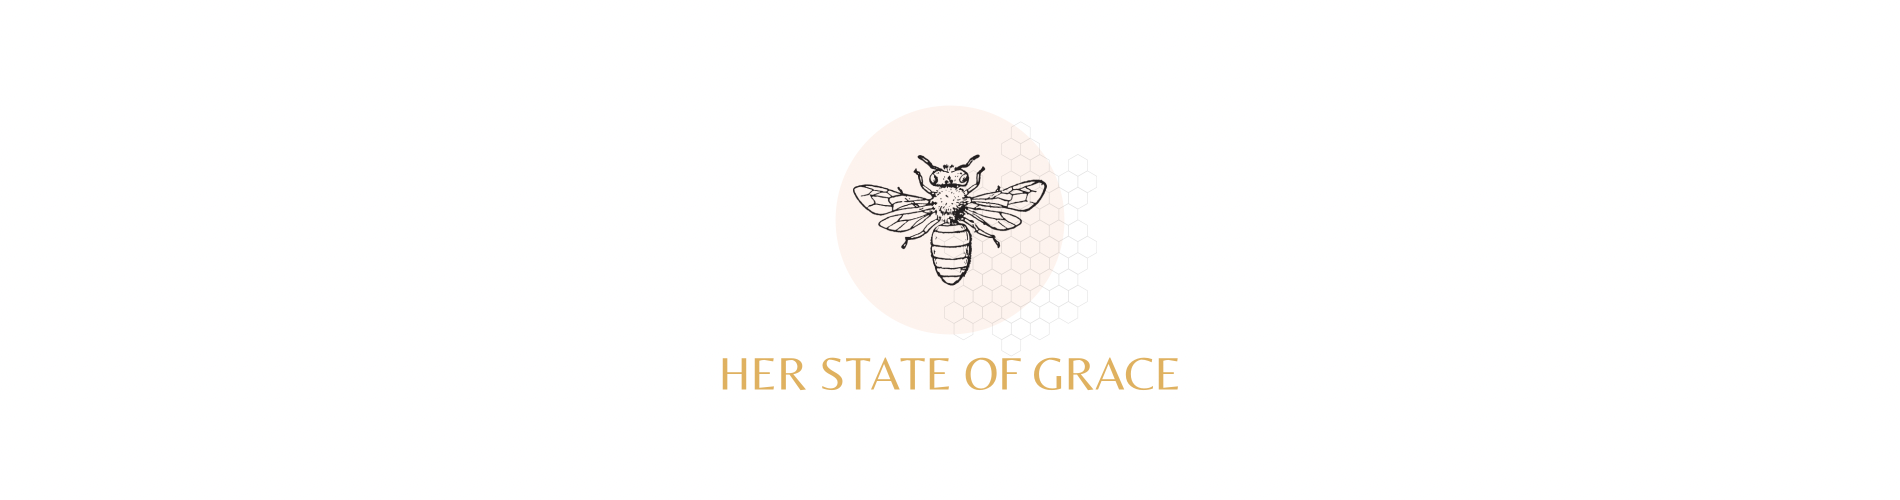 Her State of Grace